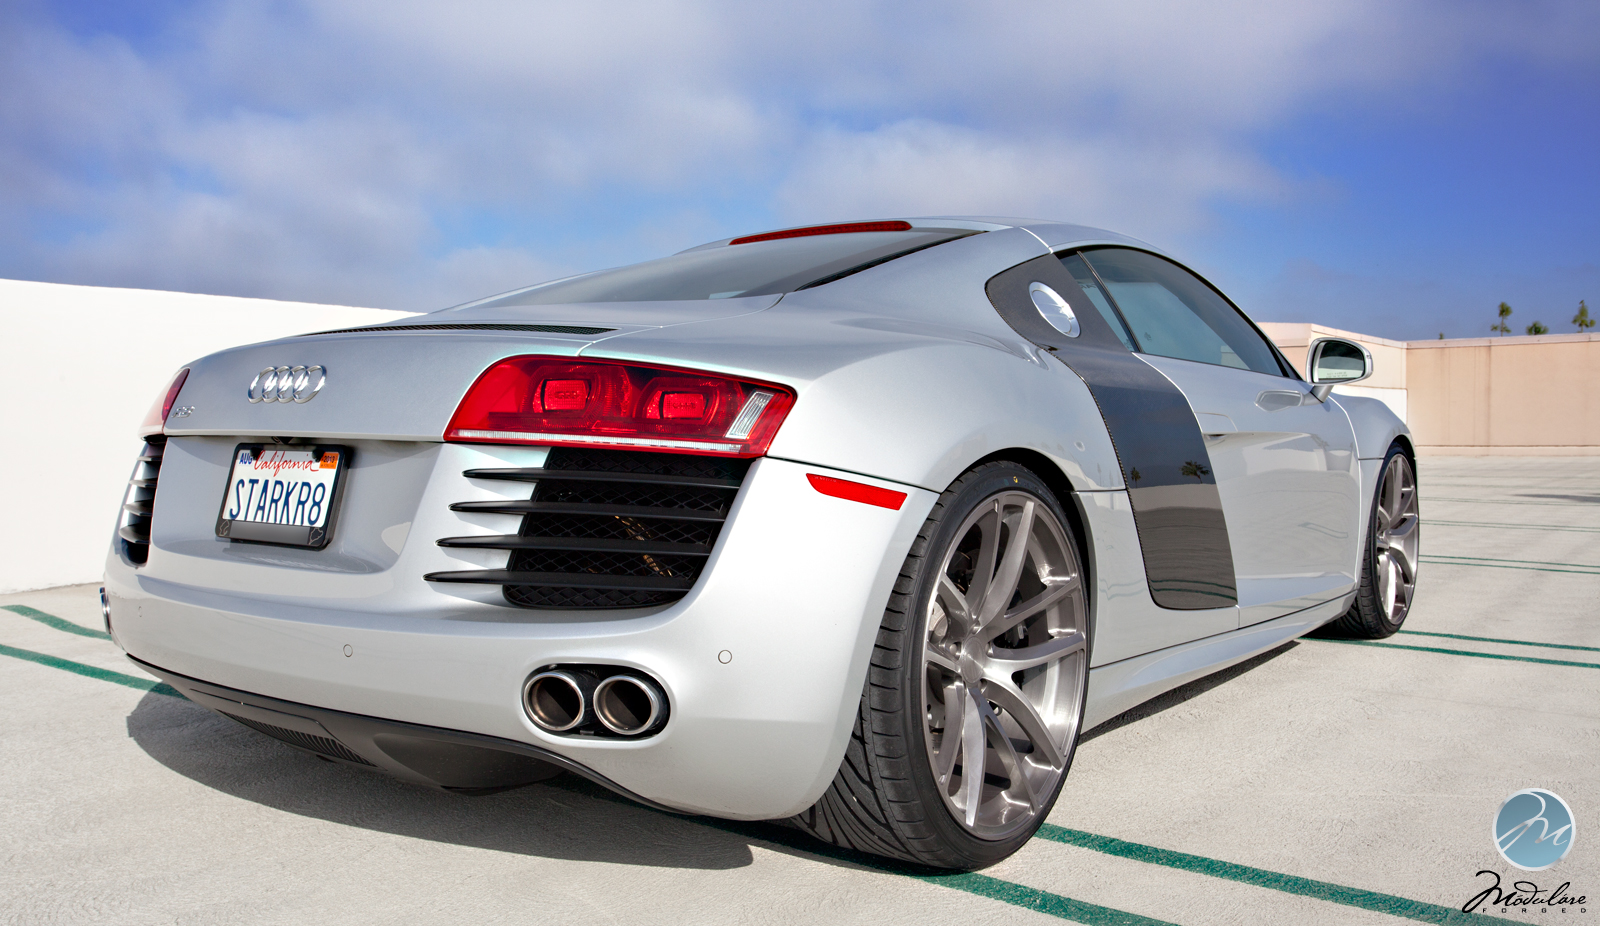 Fast Cars Audi R8 Mid Engine Sports Car